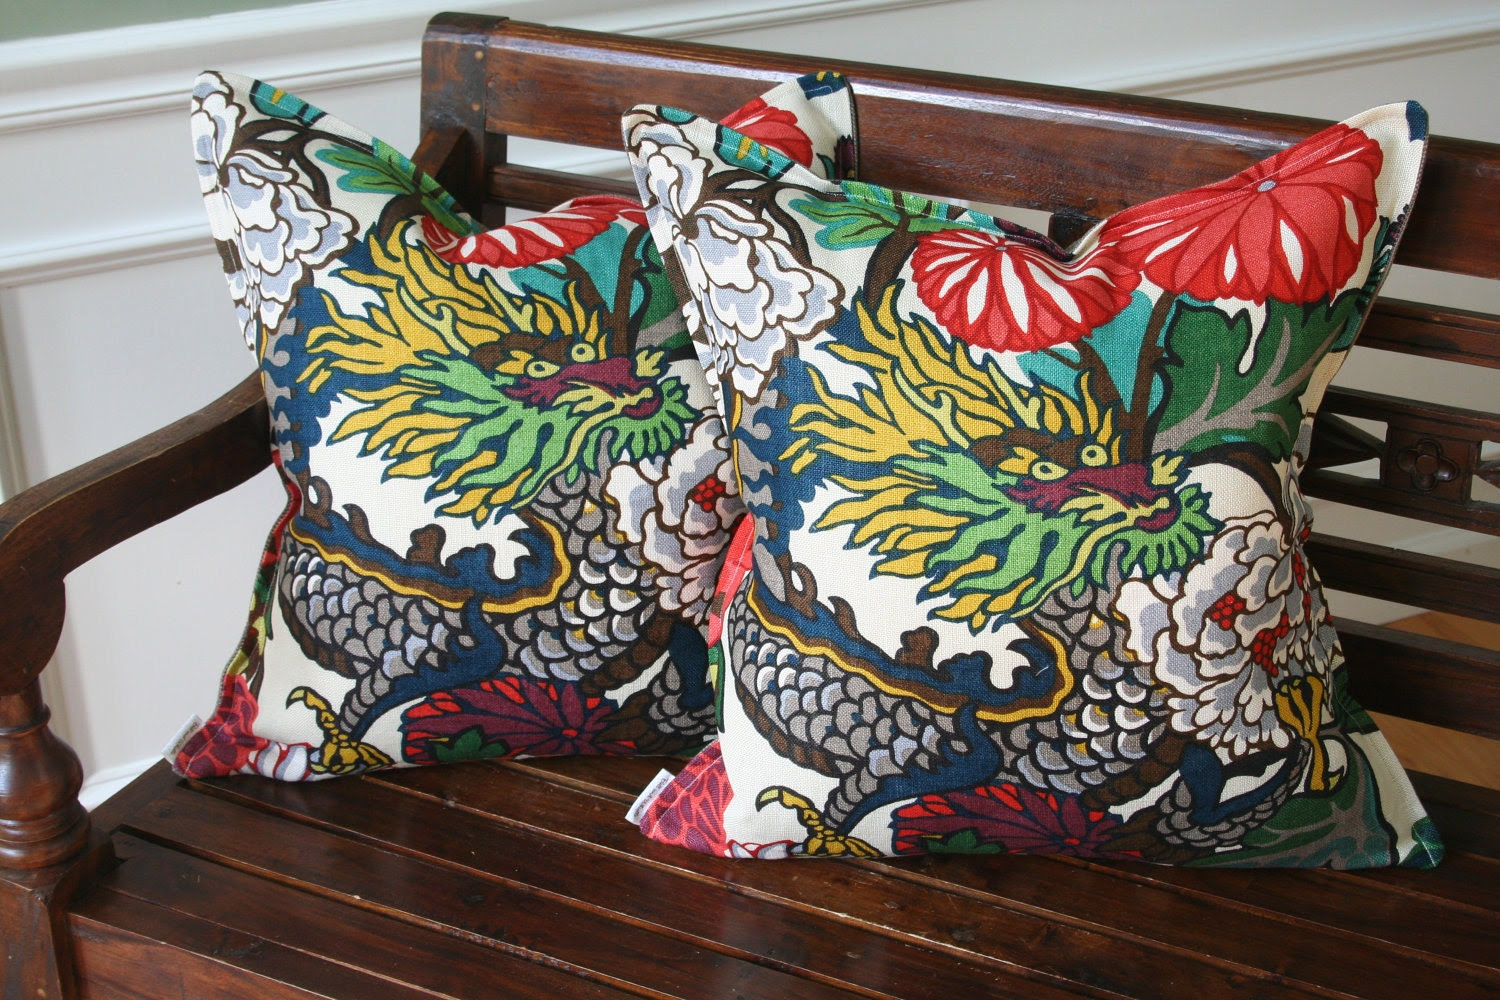 Decorative Pillow Cover- 20 x 20- Chiang Mai Dragon by F. Schumacher- Alabaster